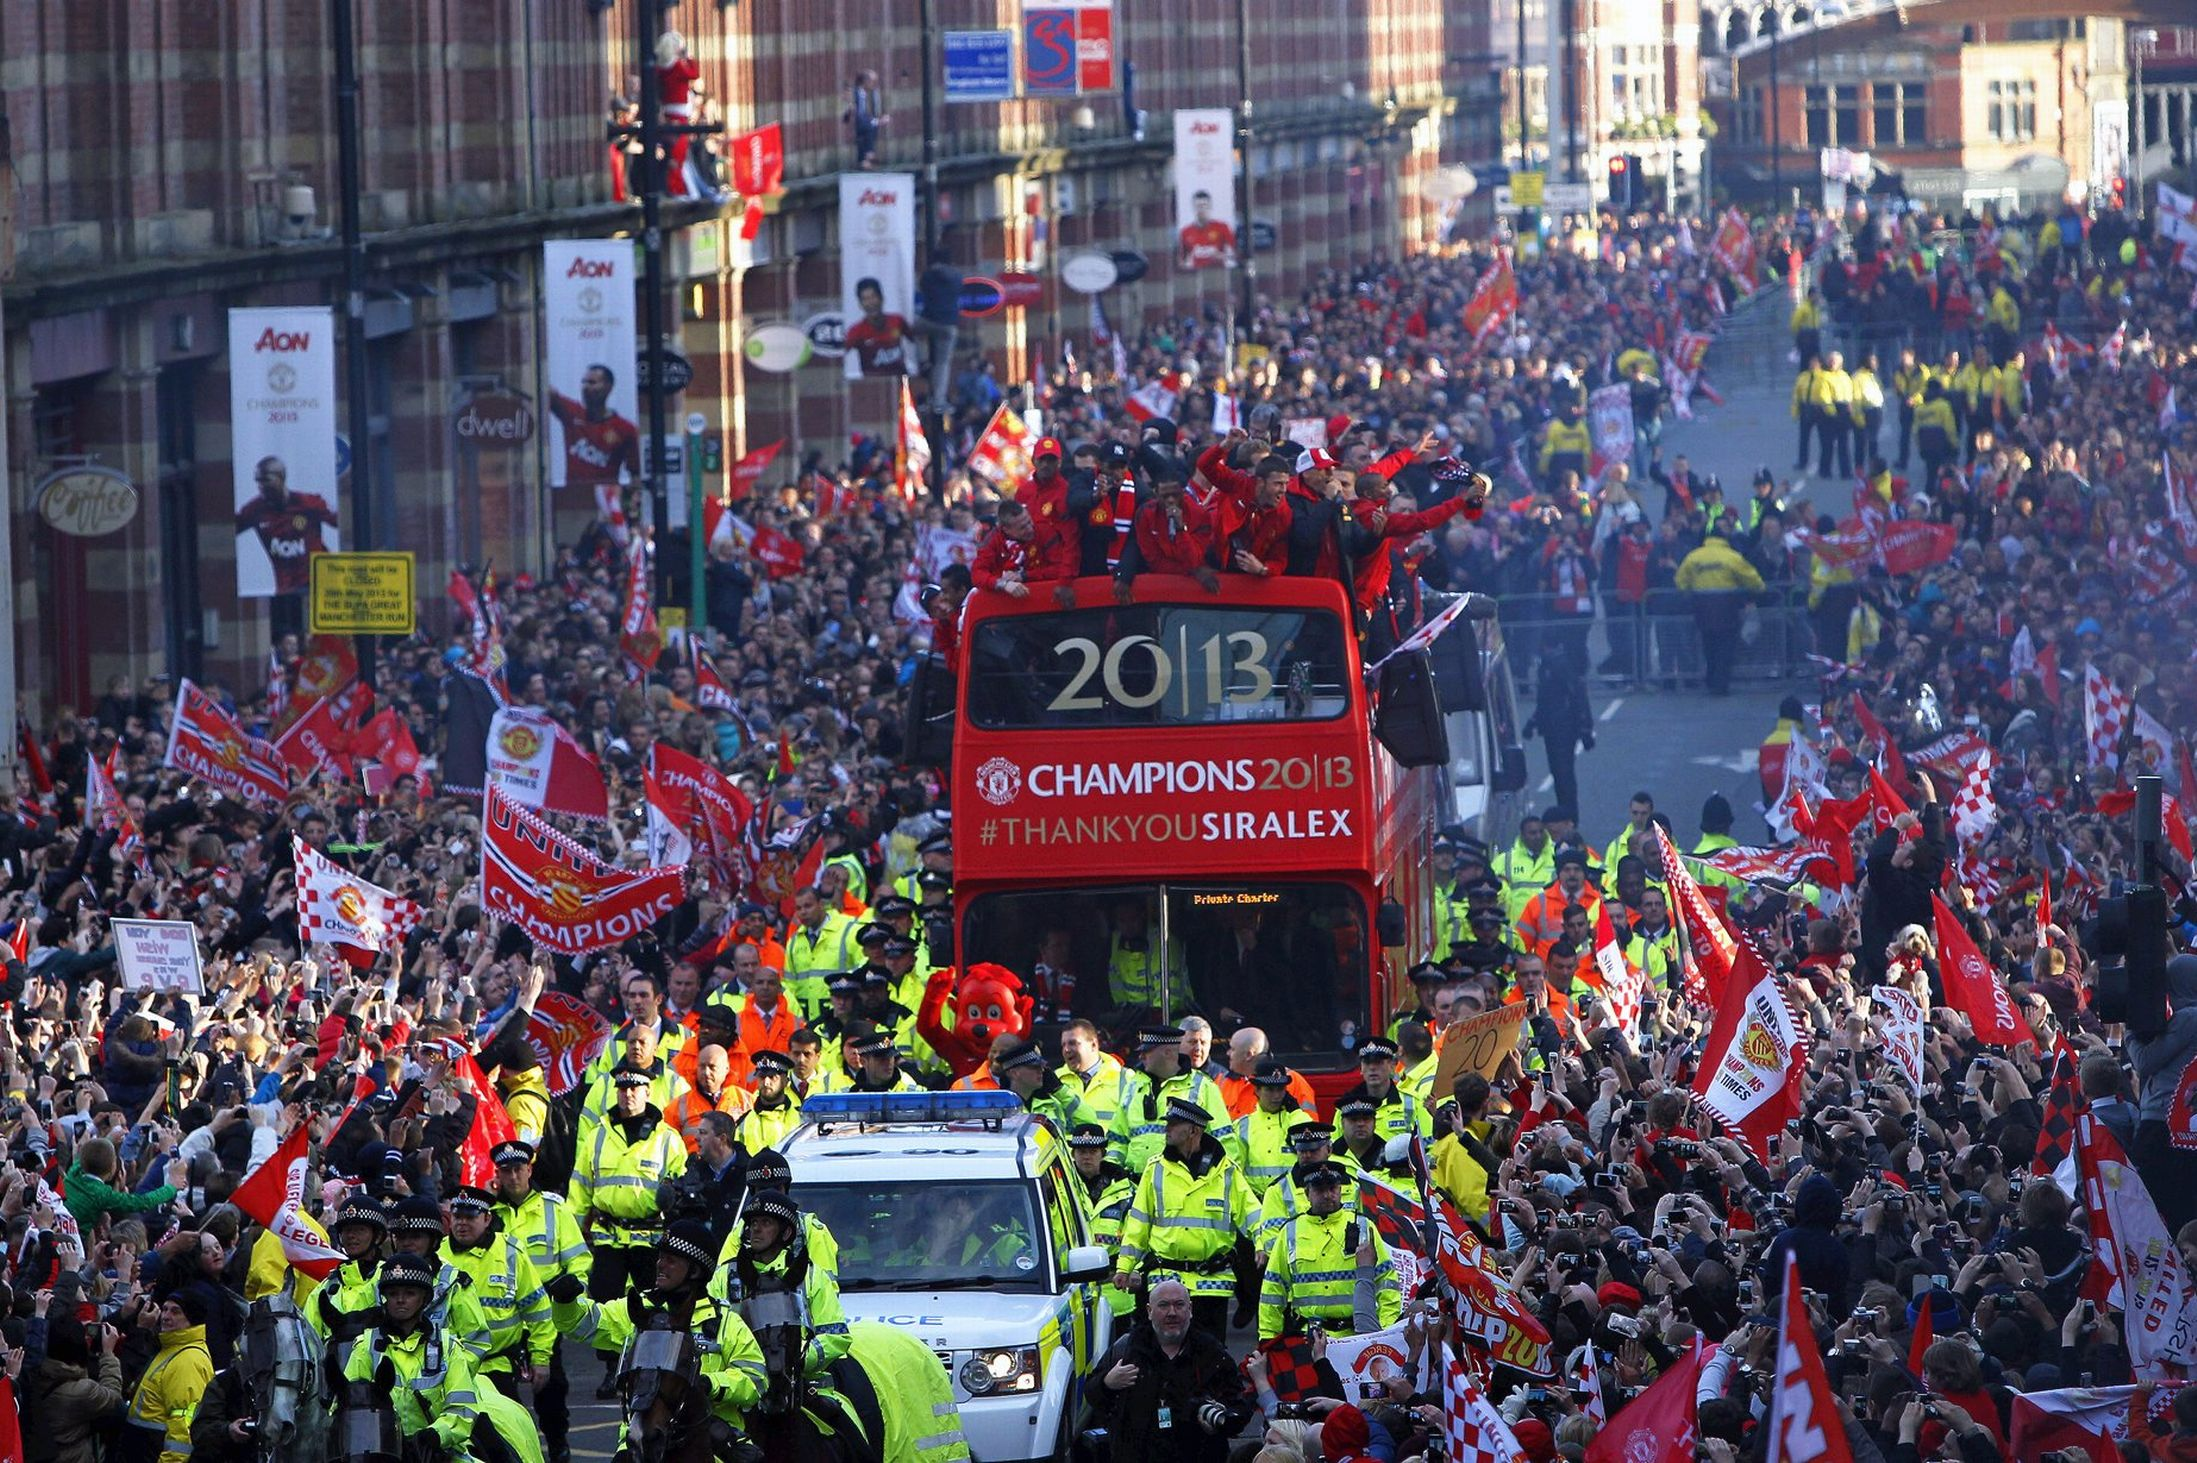 PICTURE: Manchester United Fans Celebrating During Trophy